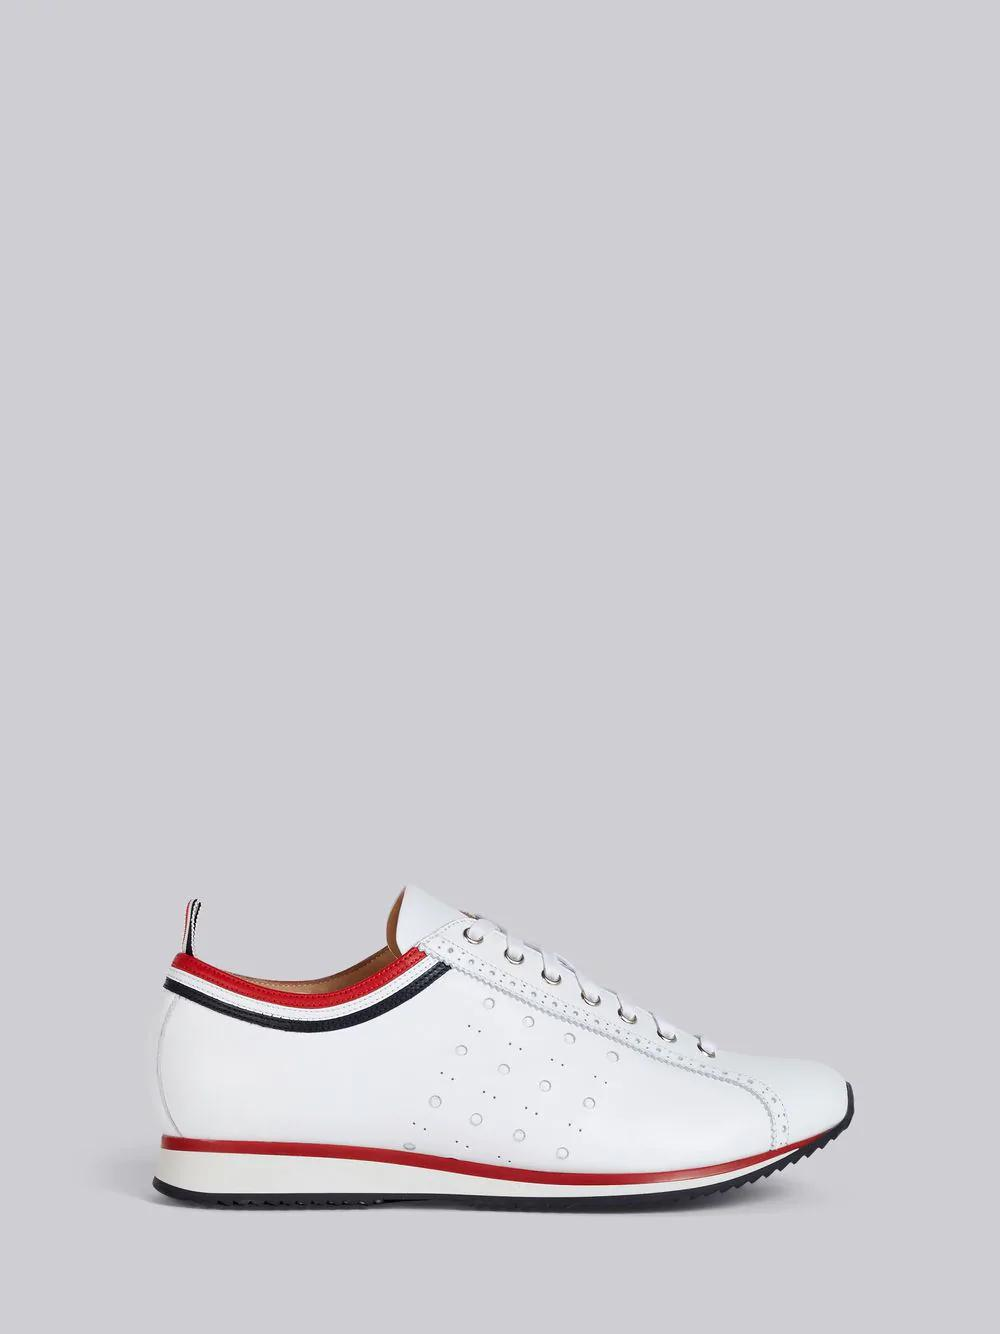 Thom Browne White Rugby Running Shoes Sneakers In 100 White